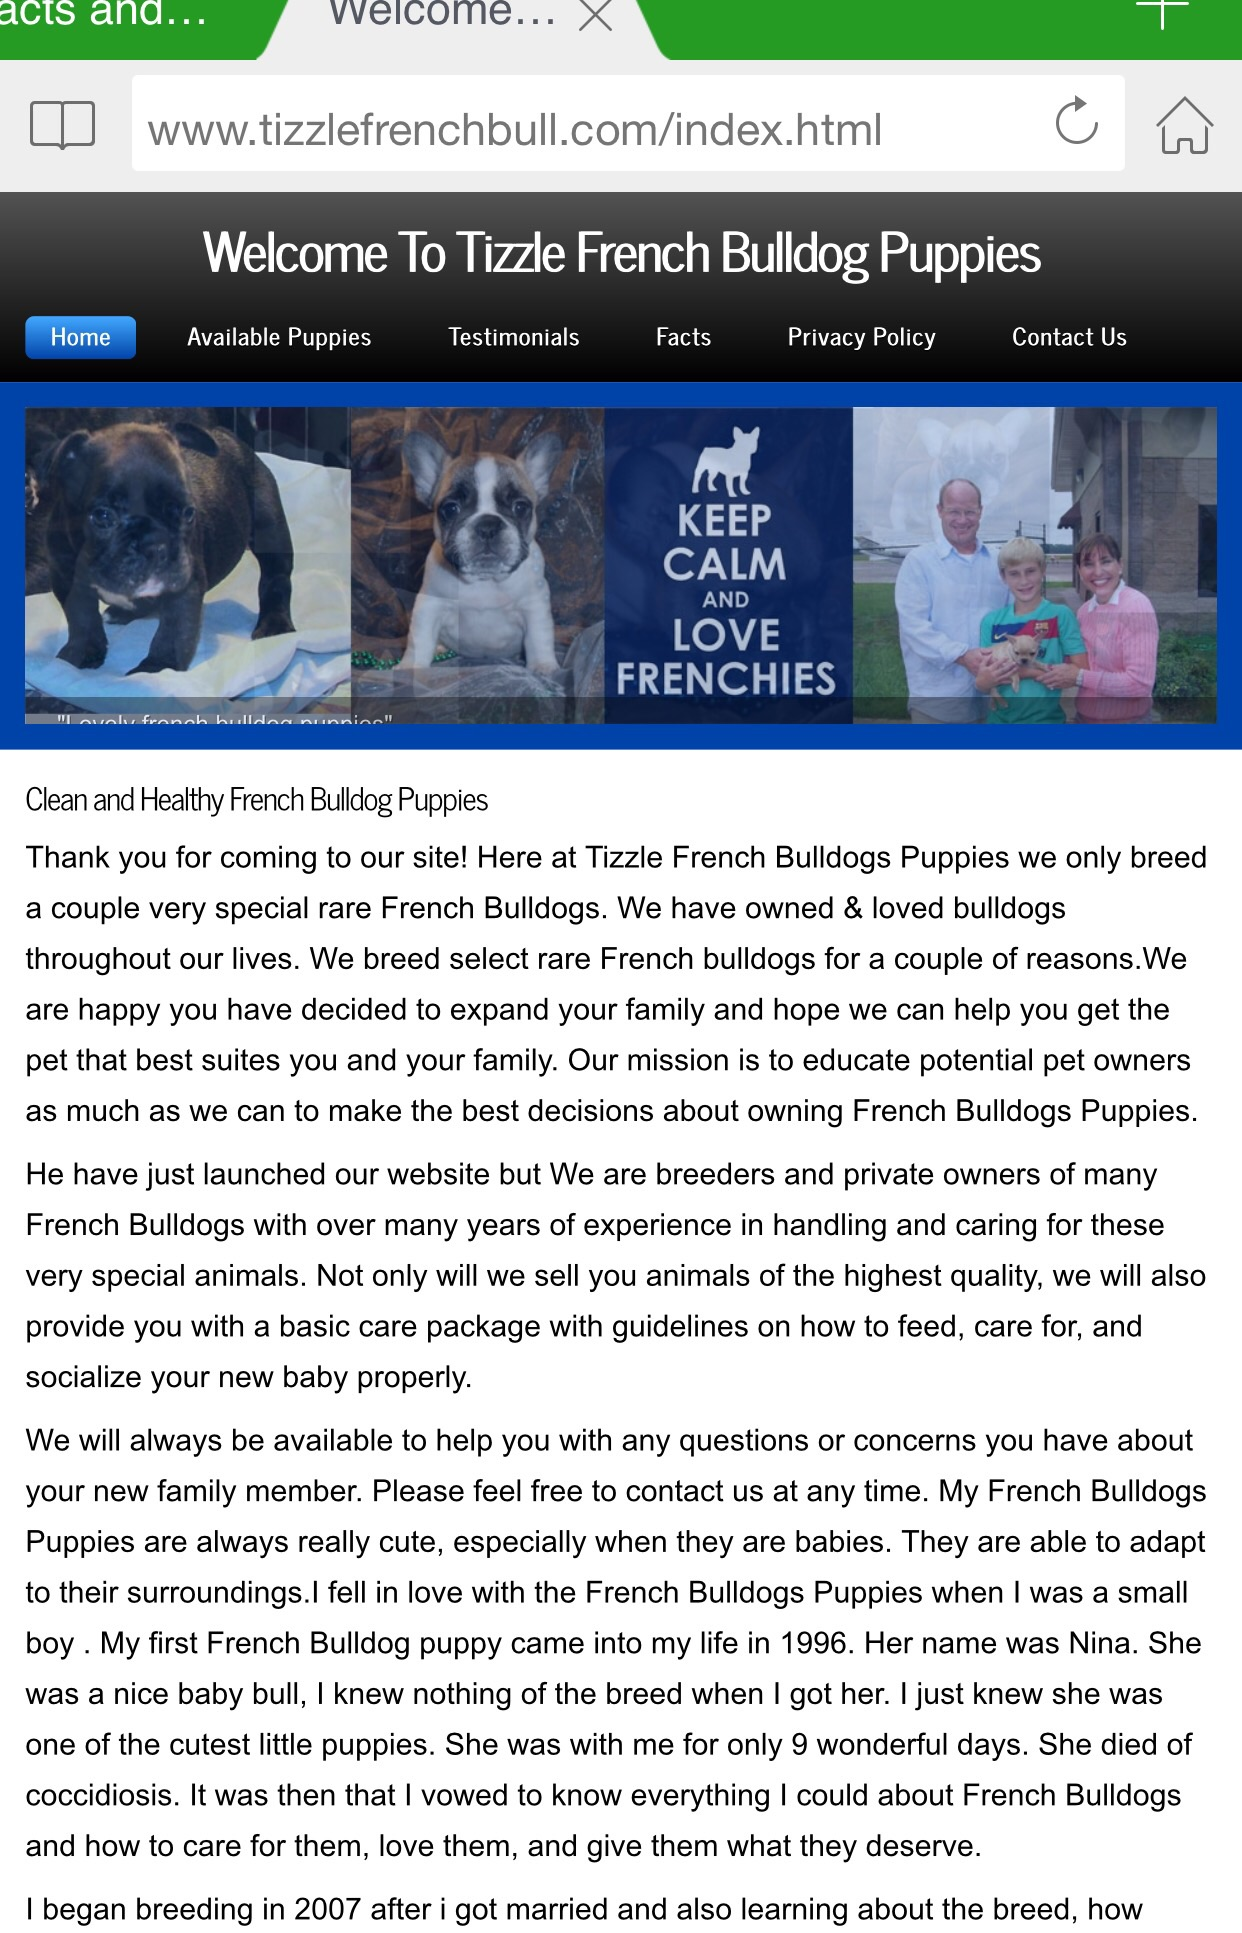 FRENCH BULLDOG SCAM ALERT PAGE